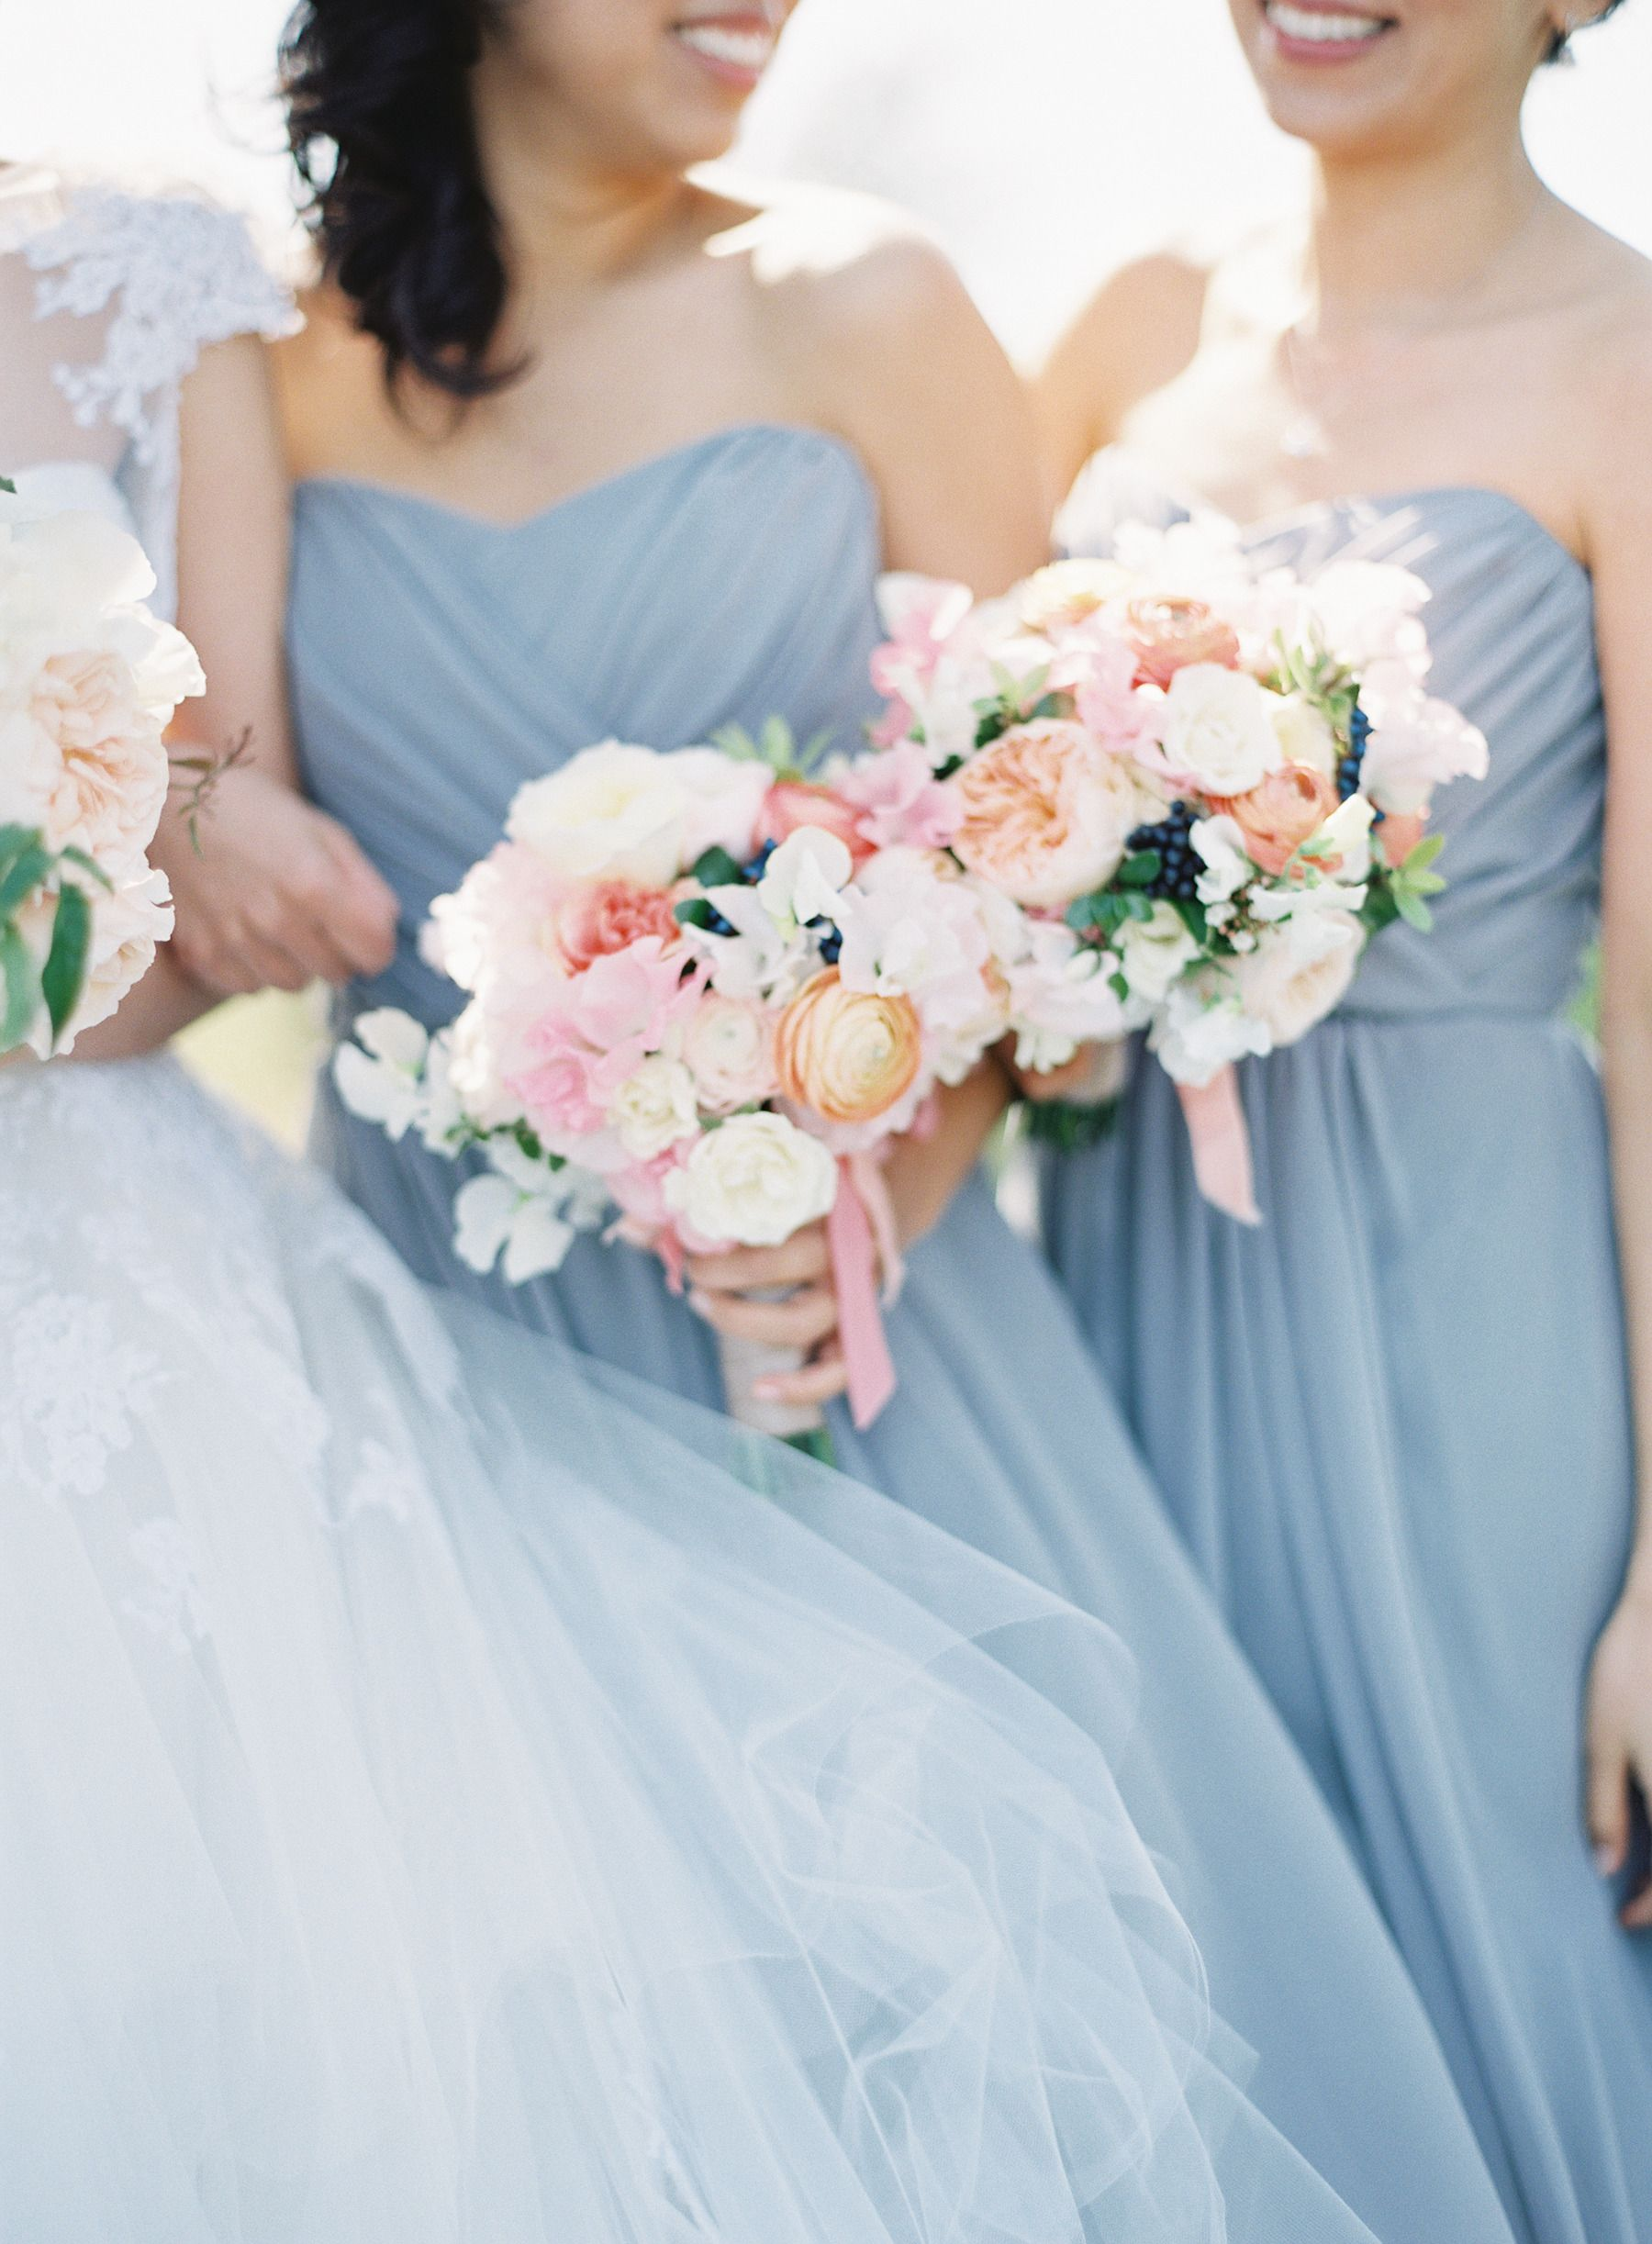 powder blue bridesmaids and pink and peach blooms | Photography: Kurt Boomer Photography - kurtboomerphoto.com Read More: http://www.stylemepretty.com/2014/09/16/romantic-hillside-wedding-in-san-clemente/